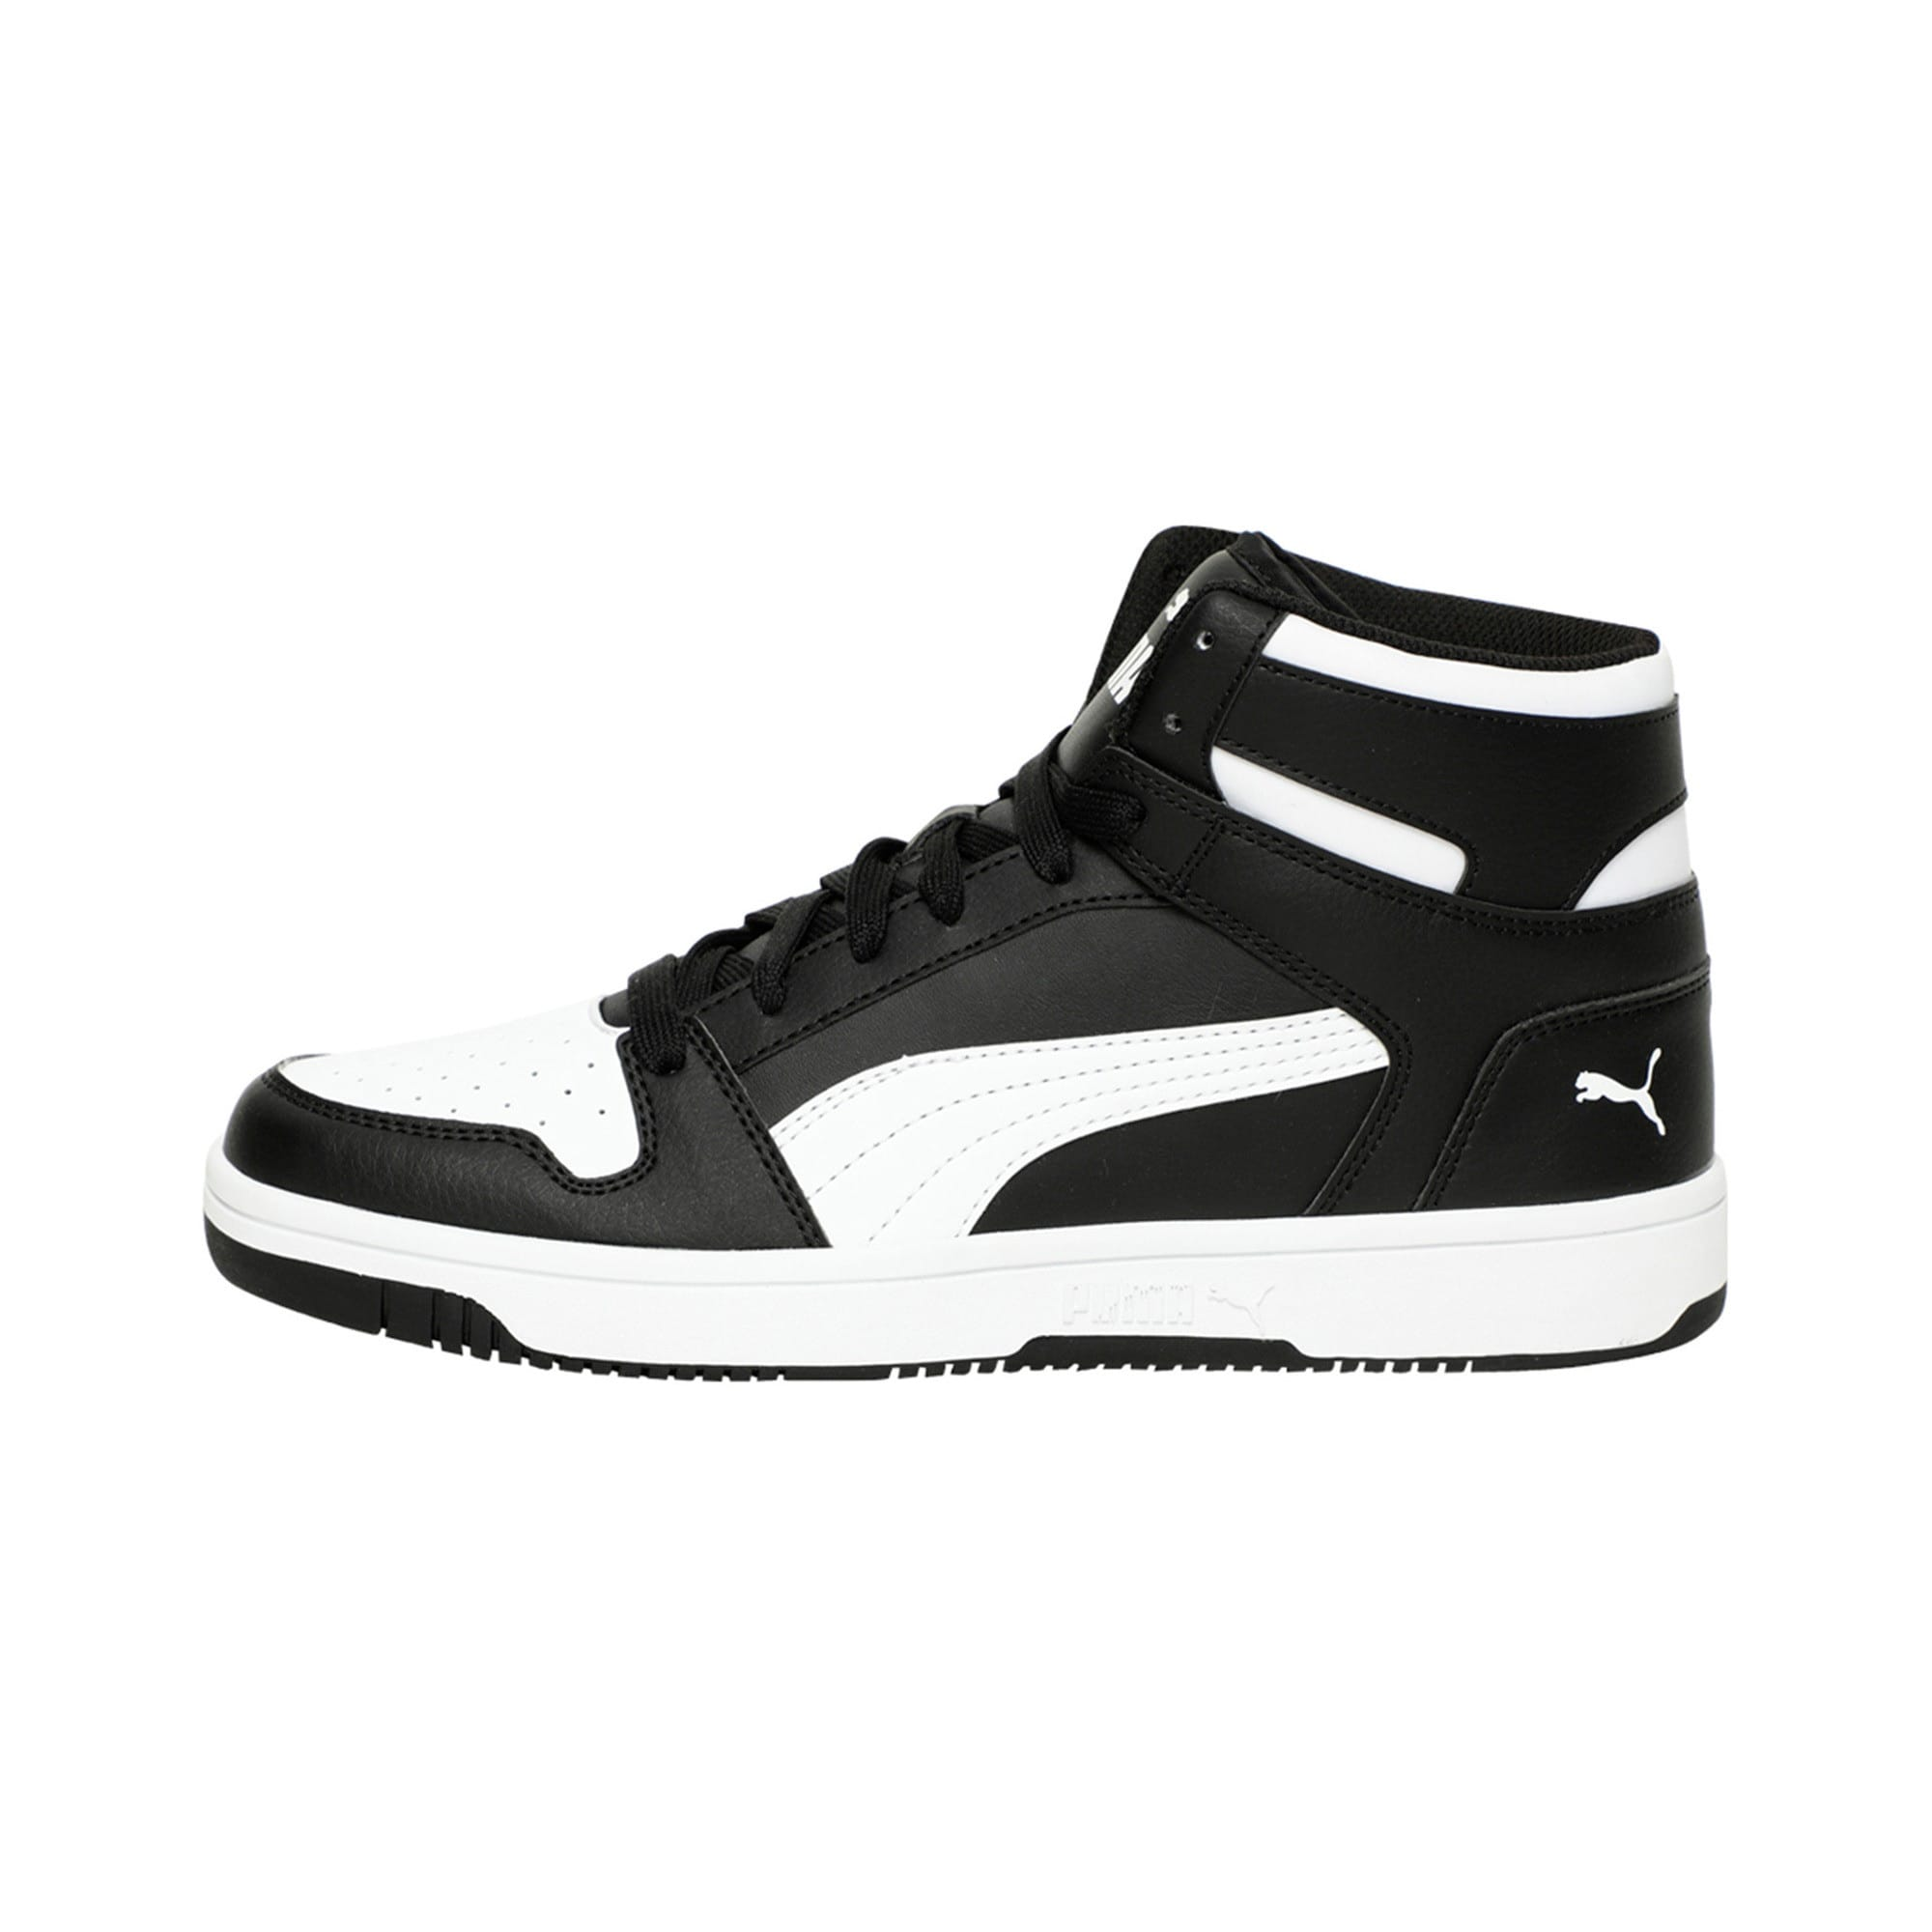 Thumbnail 1 of PUMA Rebound LayUp Sneakers, Puma Black-Puma White, medium